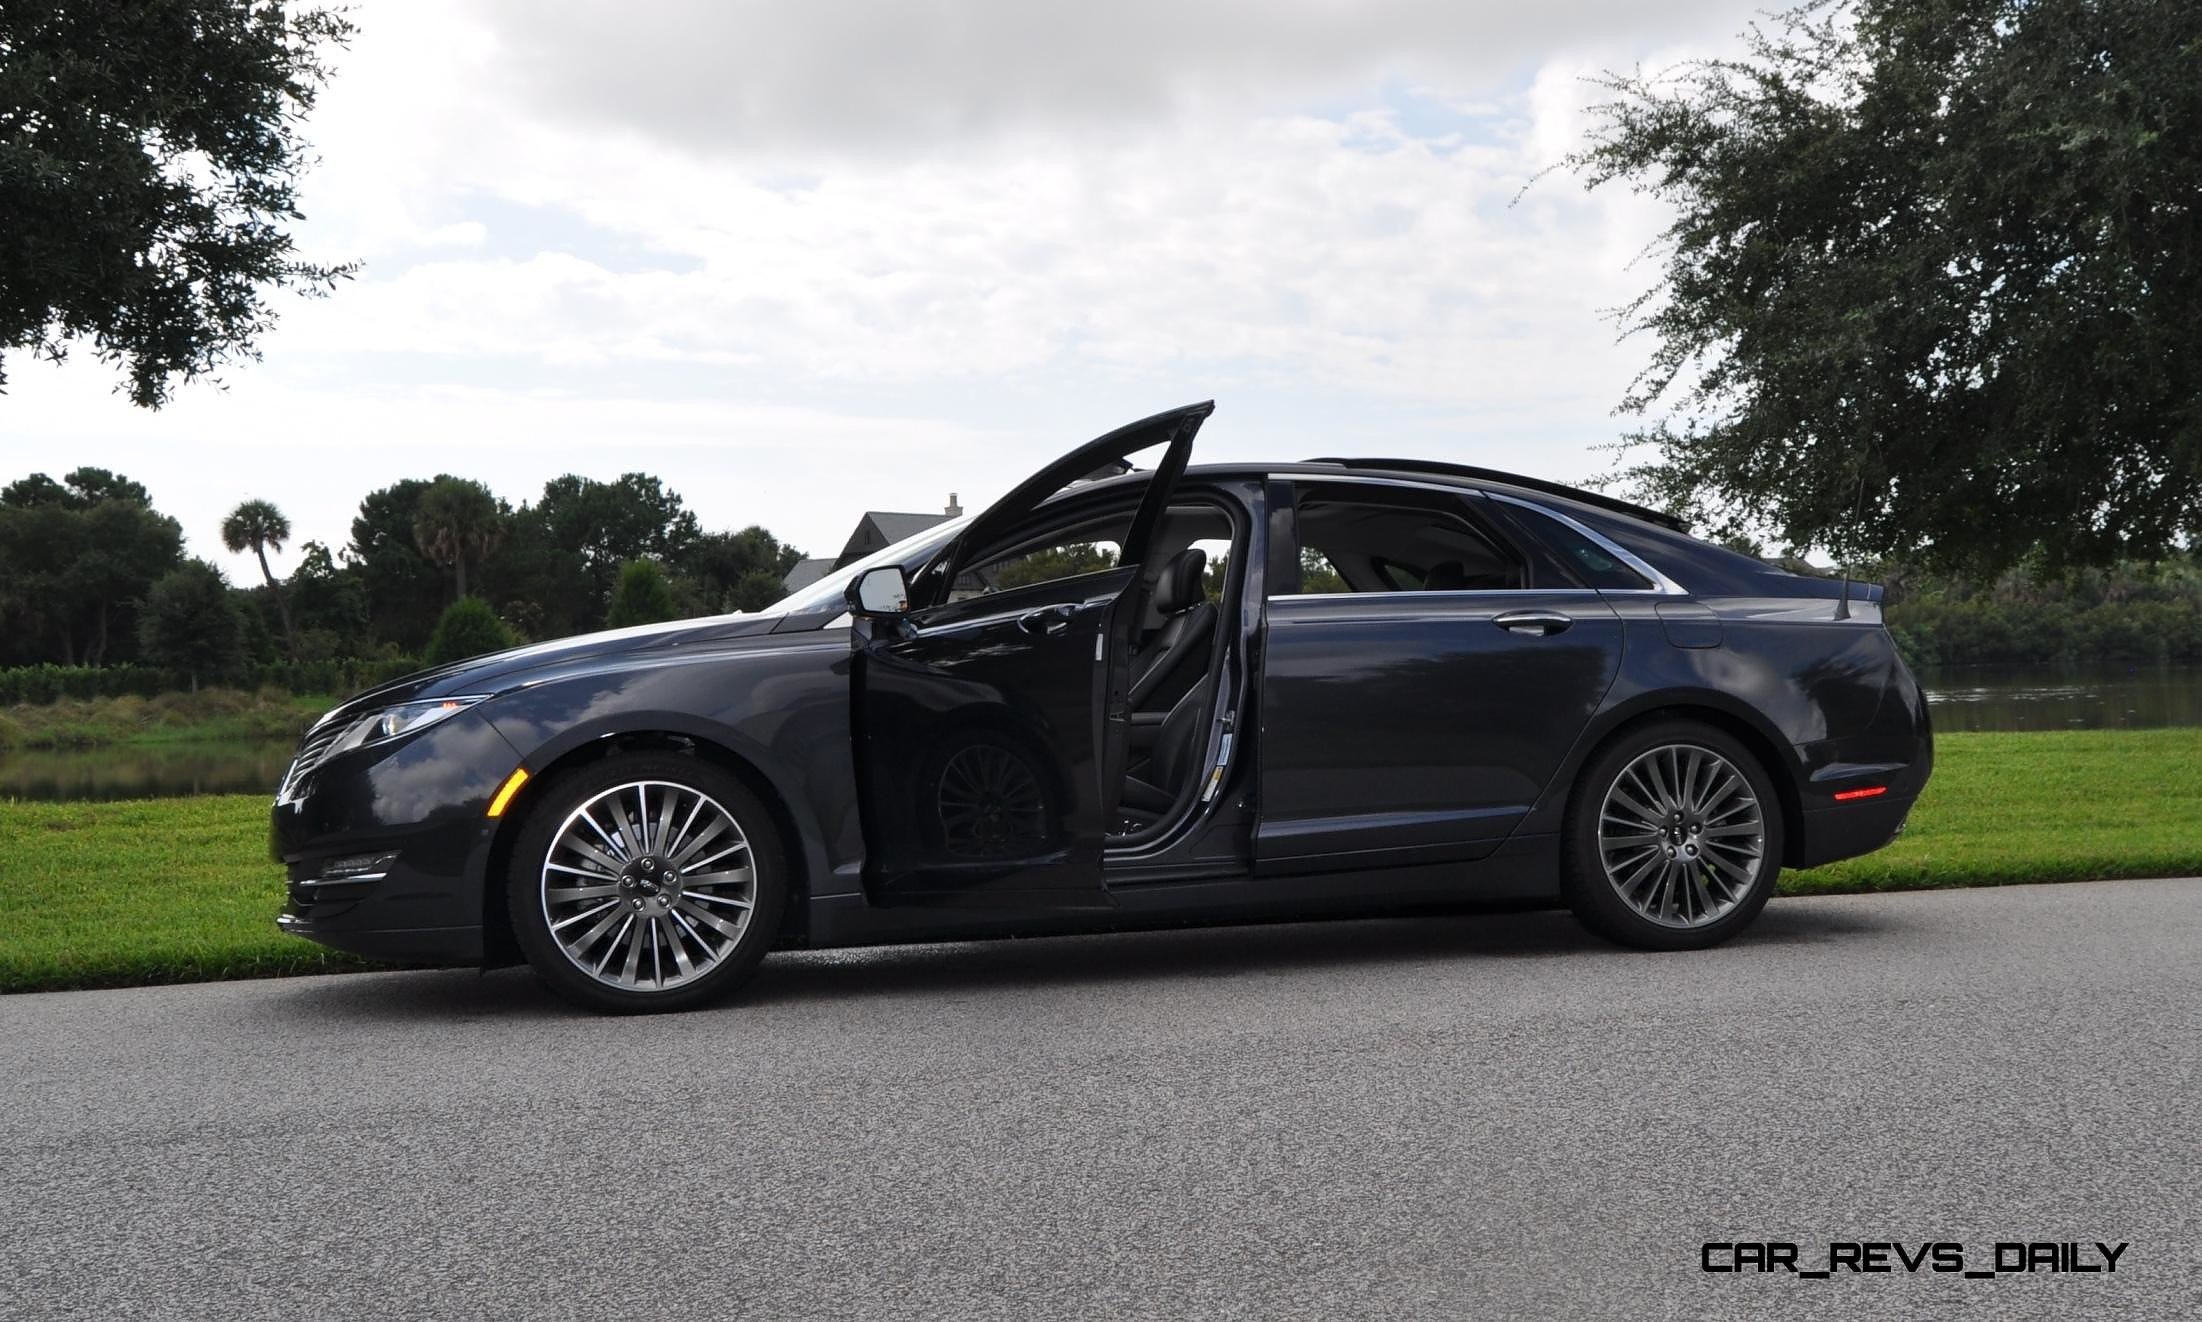 road test review 2014 lincoln mkz 3 7 awd is stylish sporty and futuristic. Black Bedroom Furniture Sets. Home Design Ideas